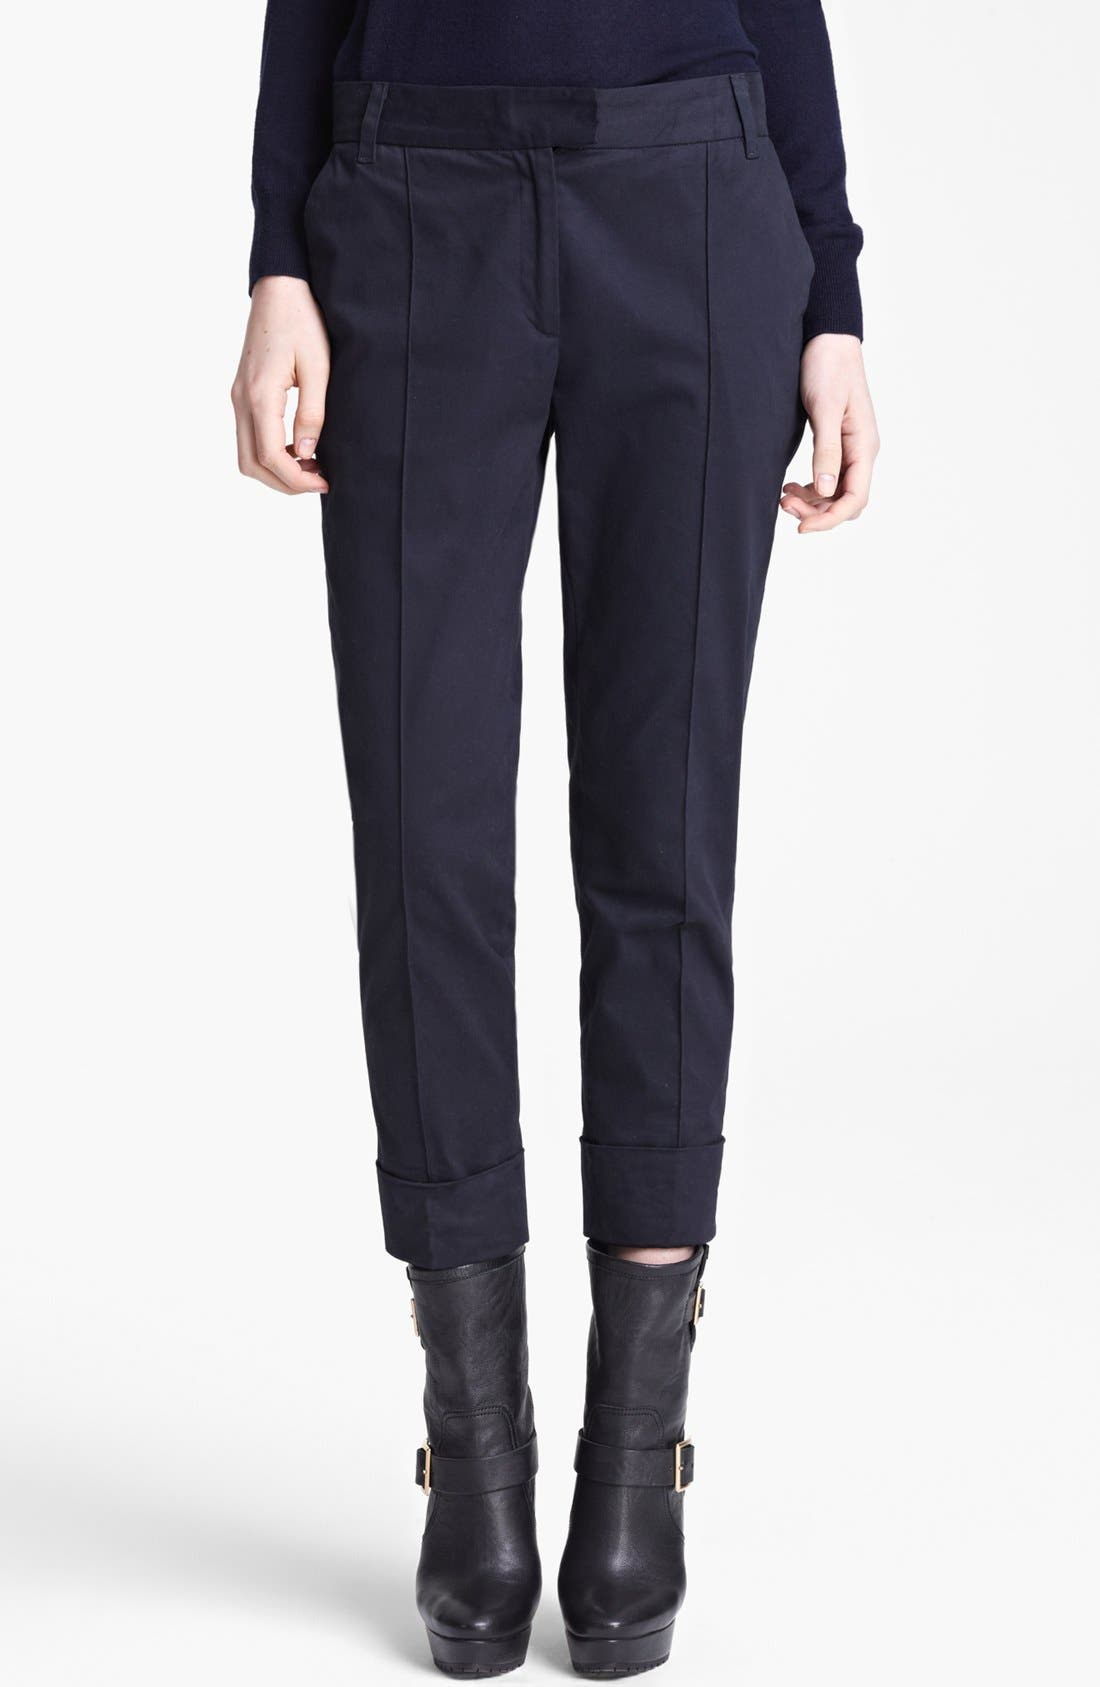 Alternate Image 1 Selected - Band of Outsiders Stretch Sateen Capri Pants